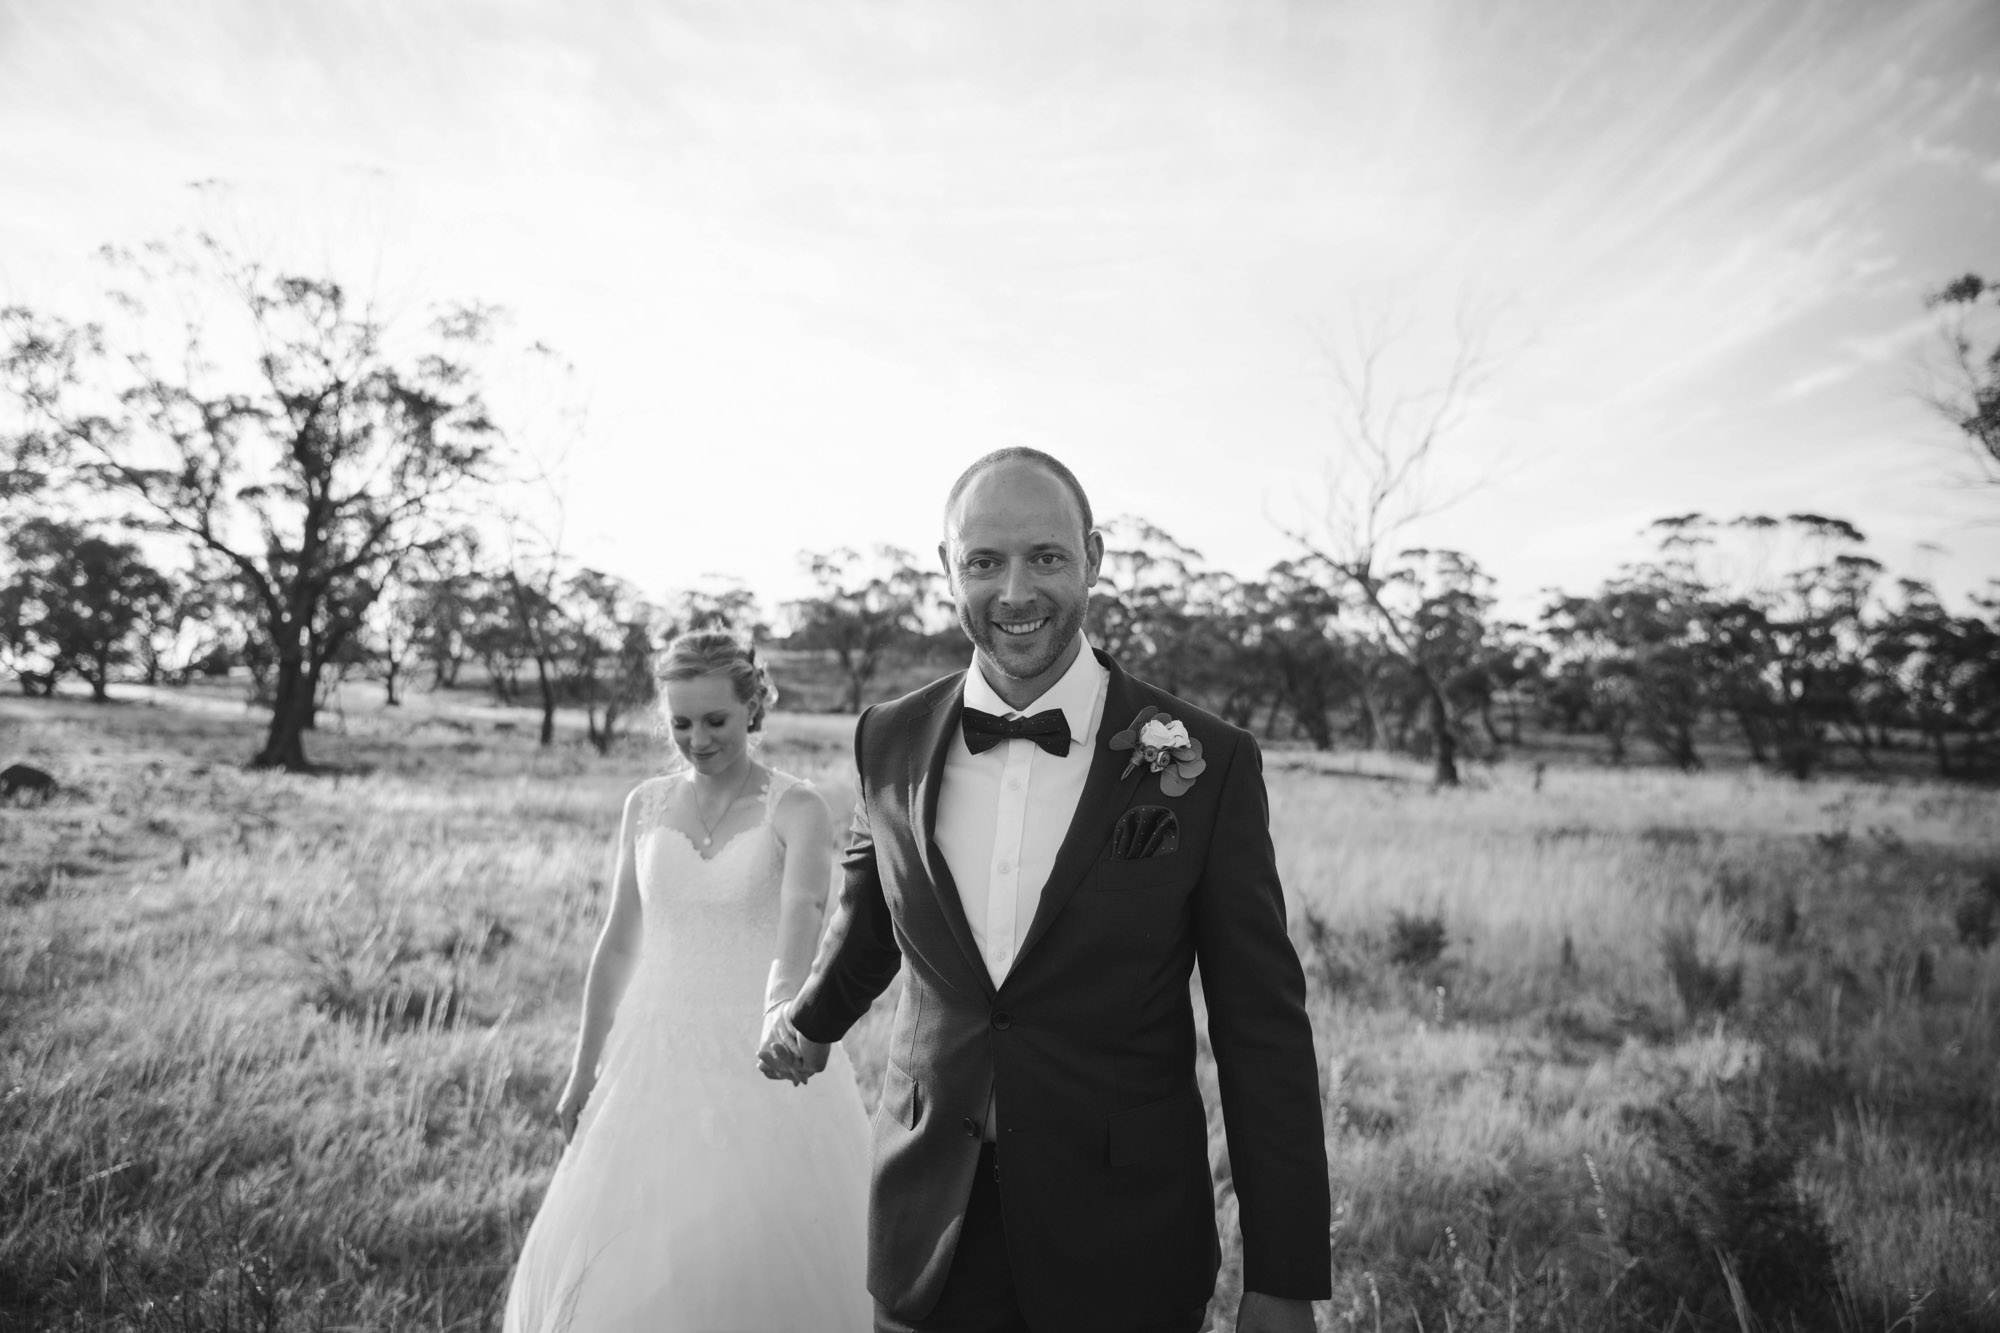 Angie-Roe-Photography-Wedding-Perth-Northam-Wheatbelt-Country-Rural (10).jpg